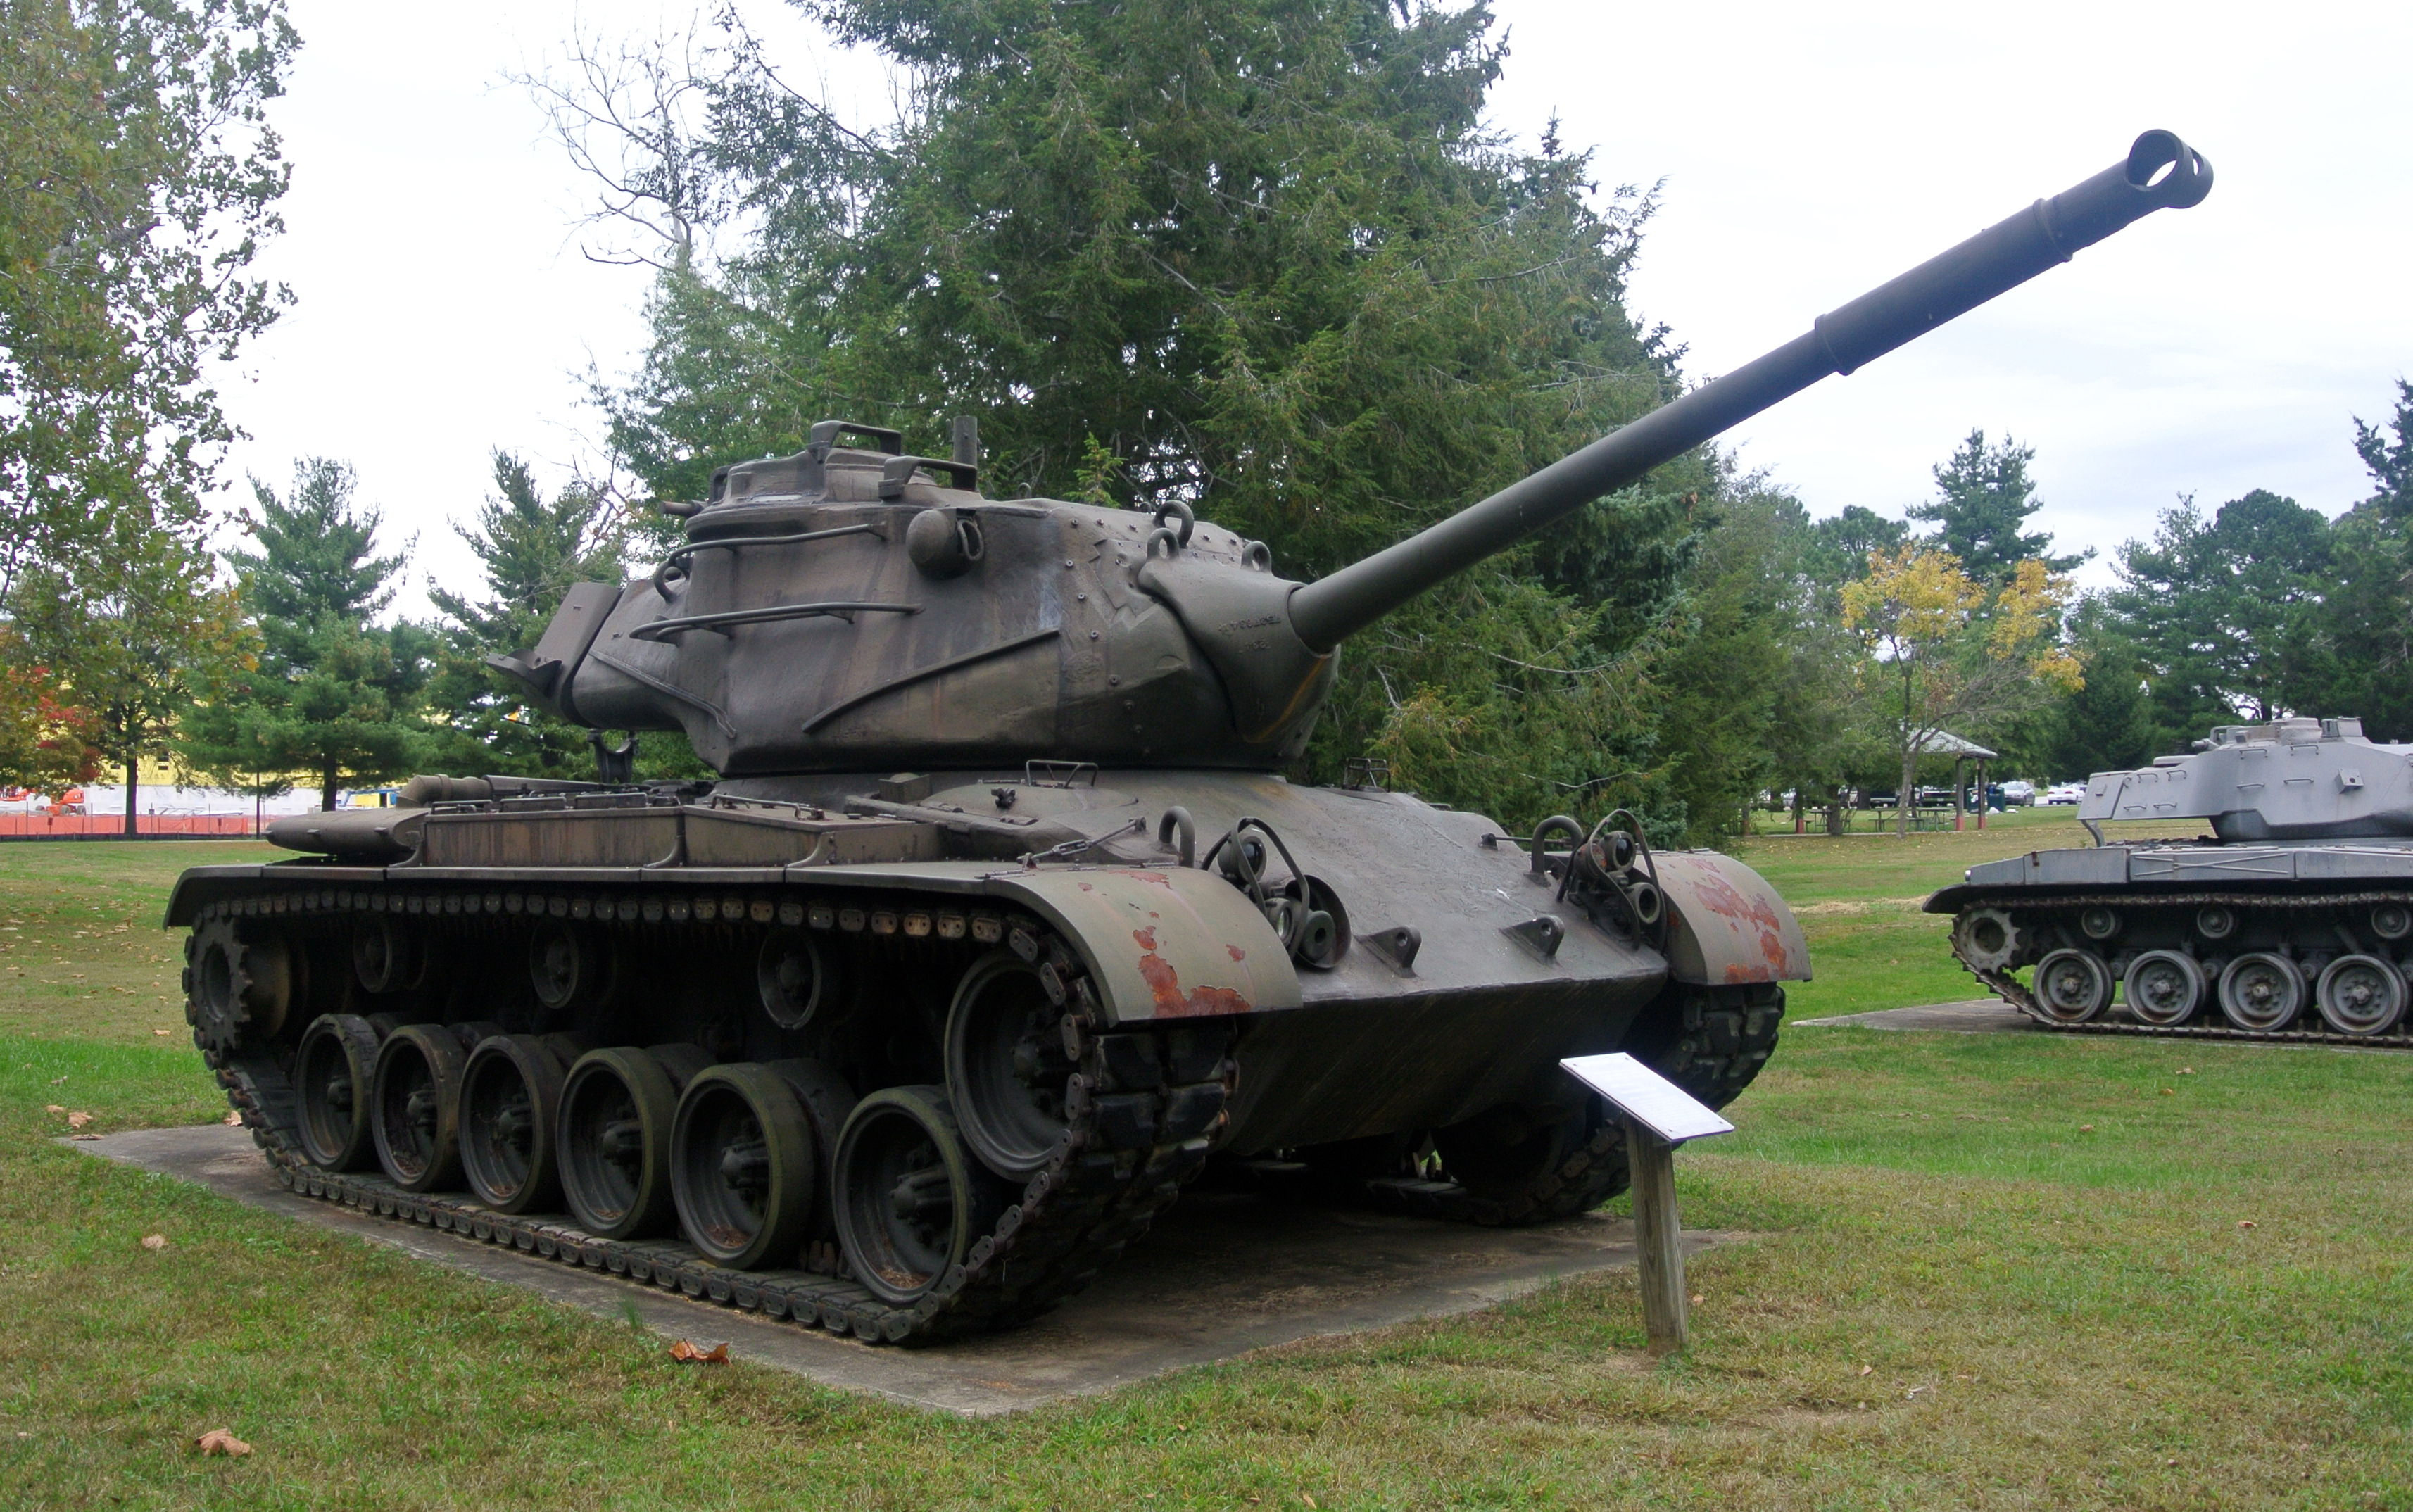 M47 Patton Fort Meade, w stanie Maryland. /Fot. Wilson44691, via Wikimedia Commons, na licencji CC0